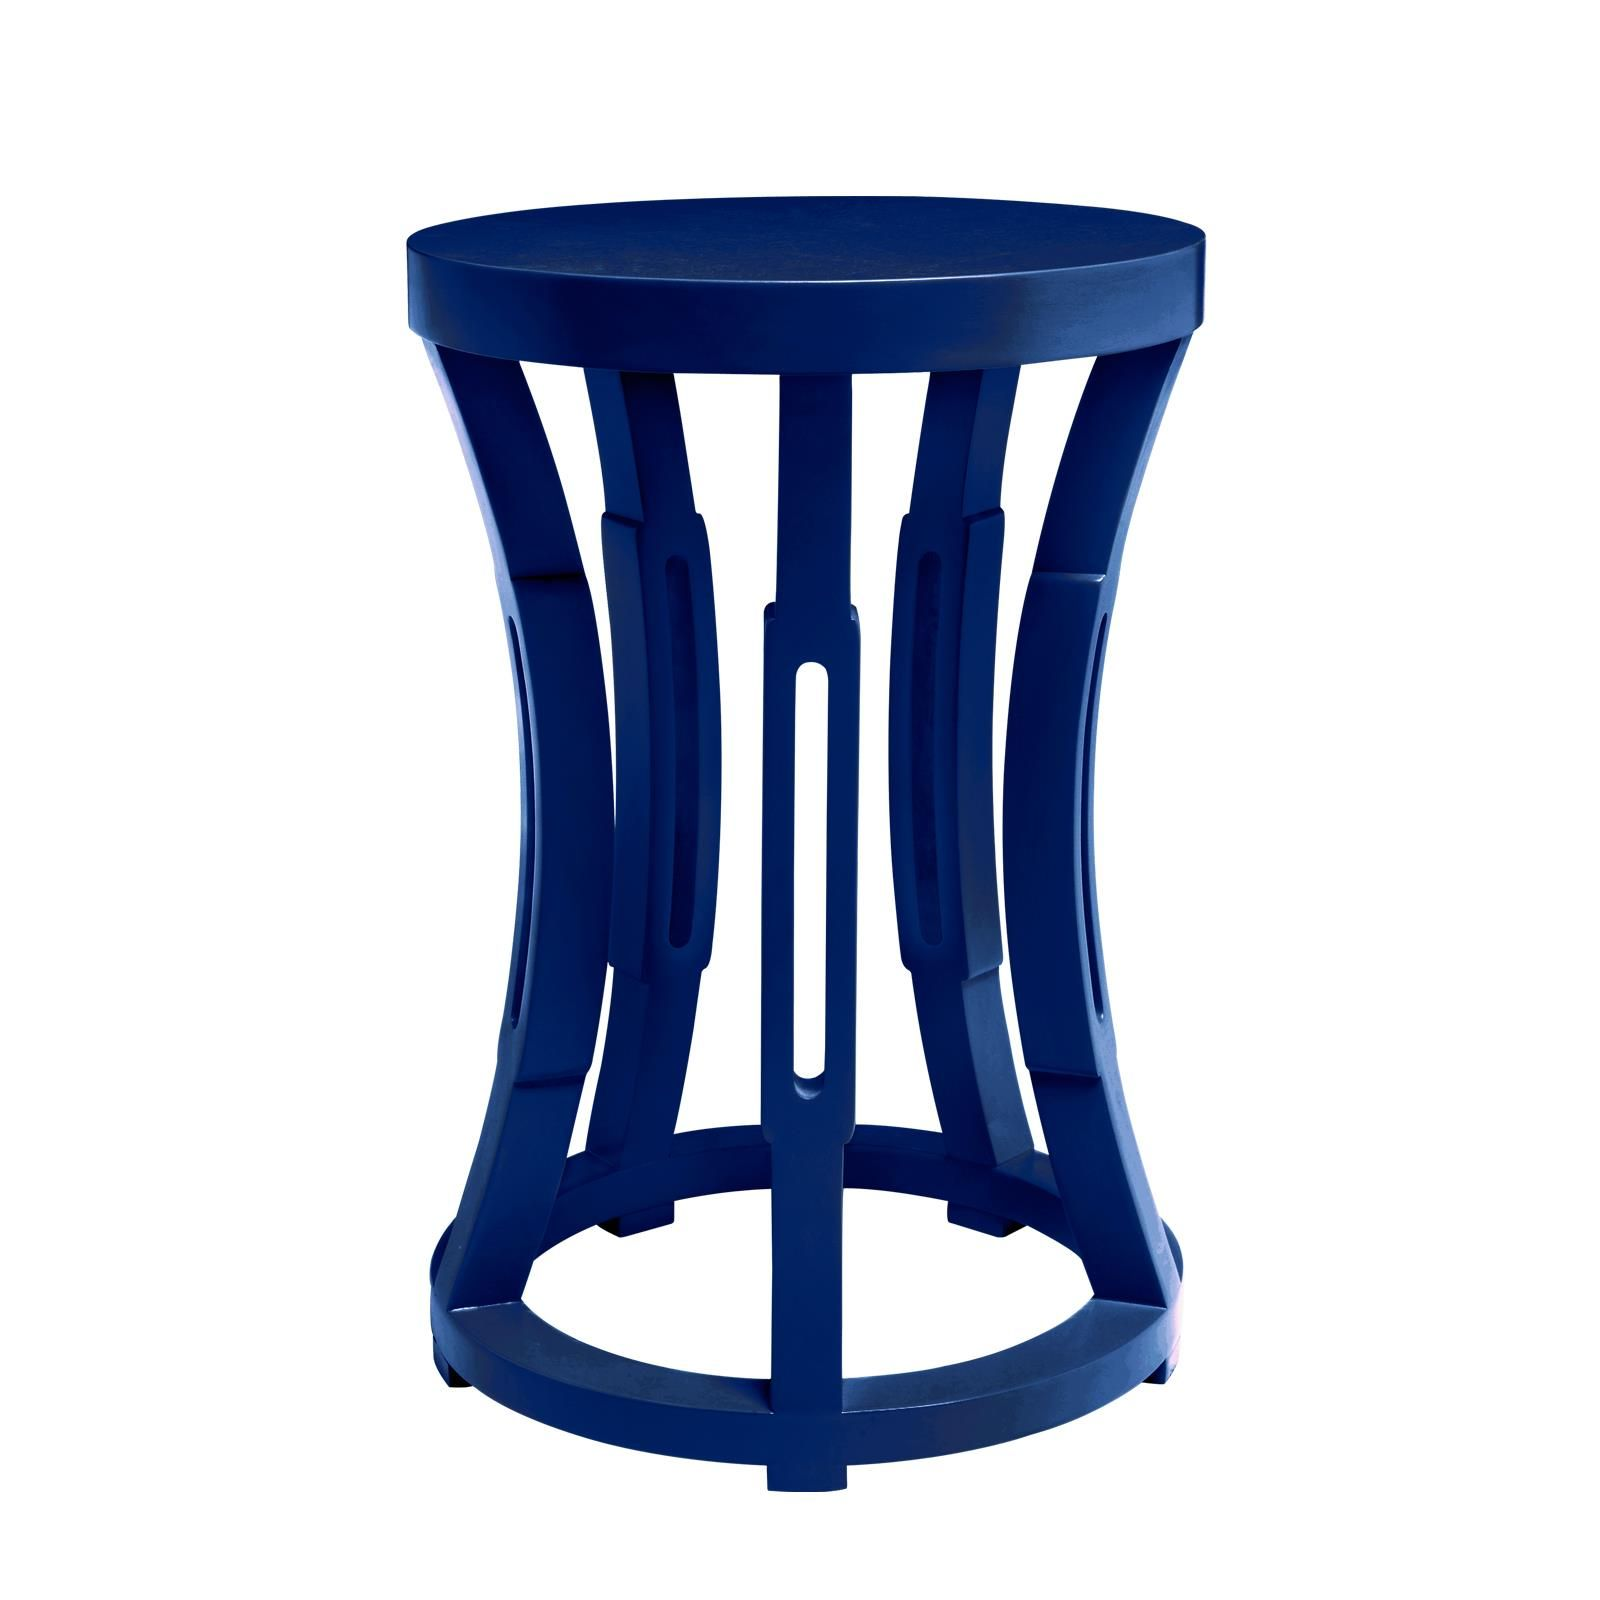 hourglass stool side table navy blue bungalow amit palace outdoor hobby lobby patio furniture reclaimed wood round end west elm peggy nate berkus safavieh brogen accent lawn chair